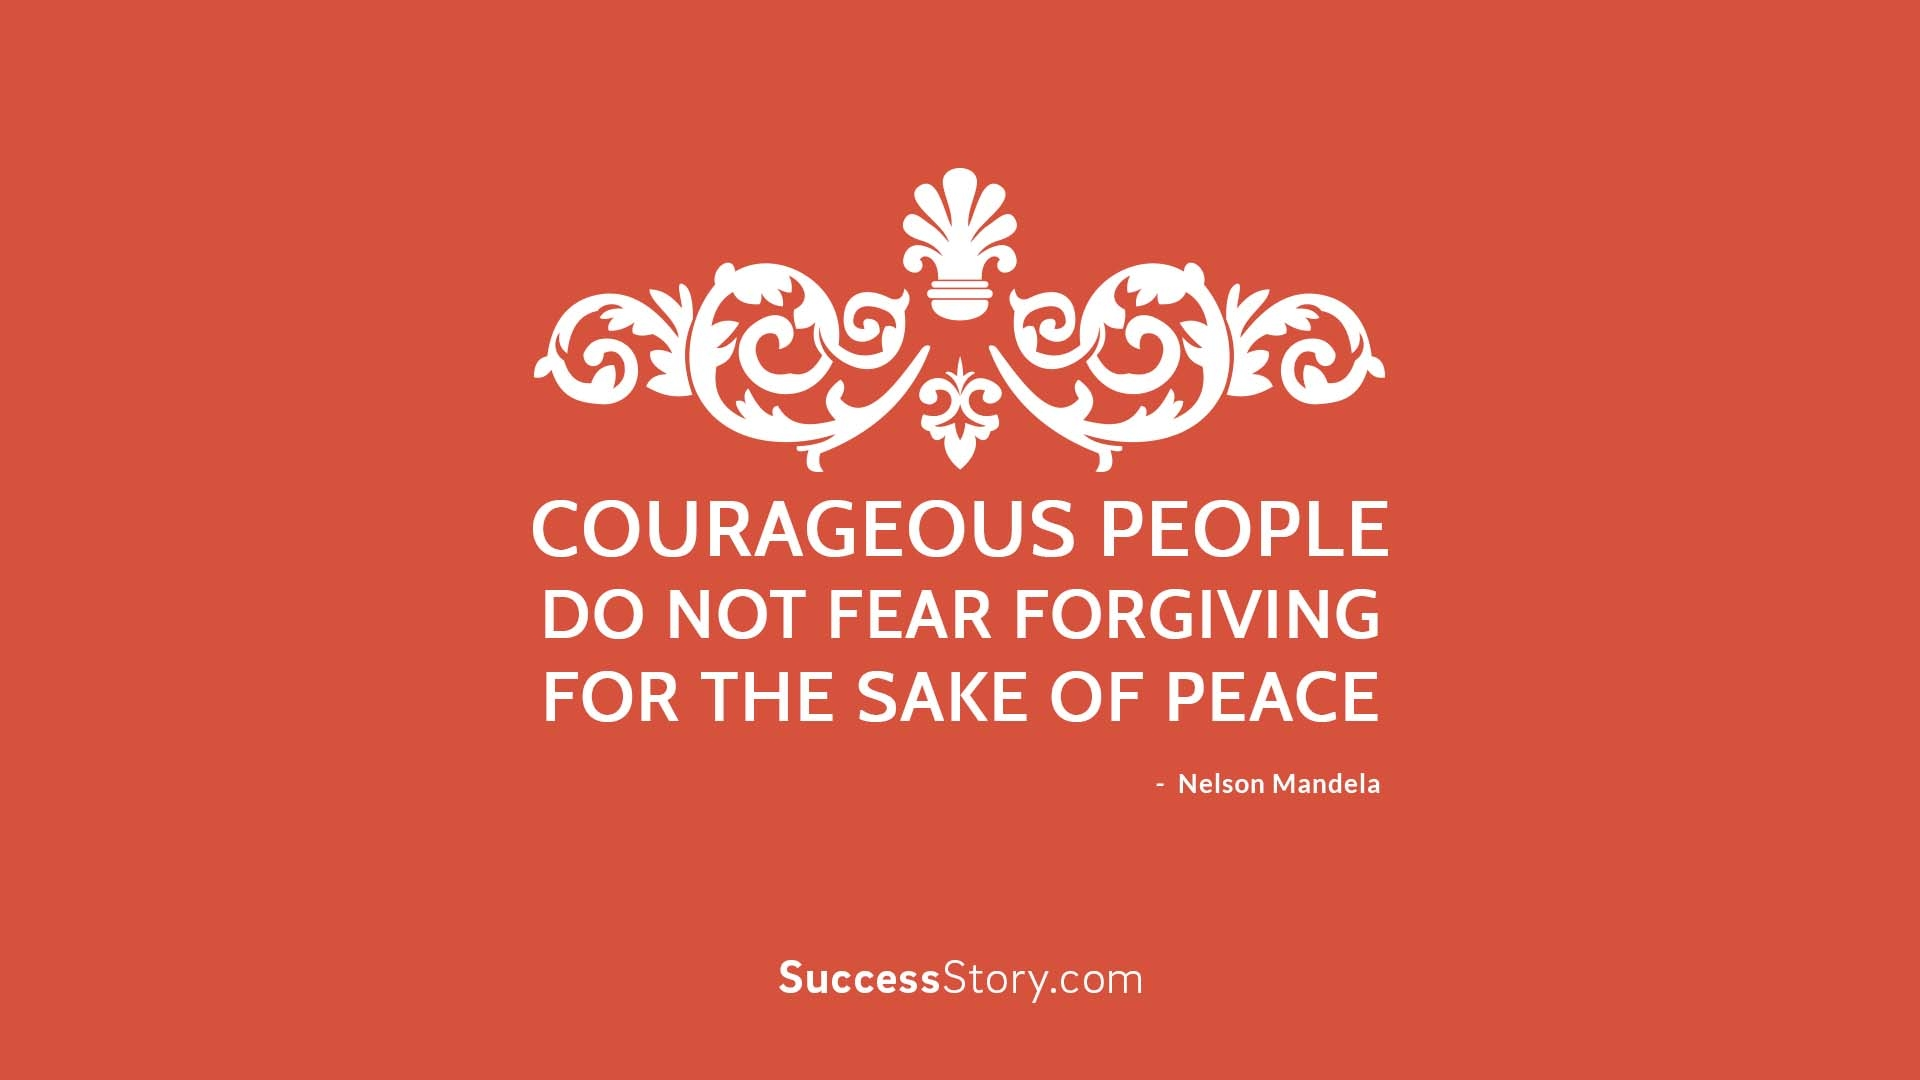 Courageous people do